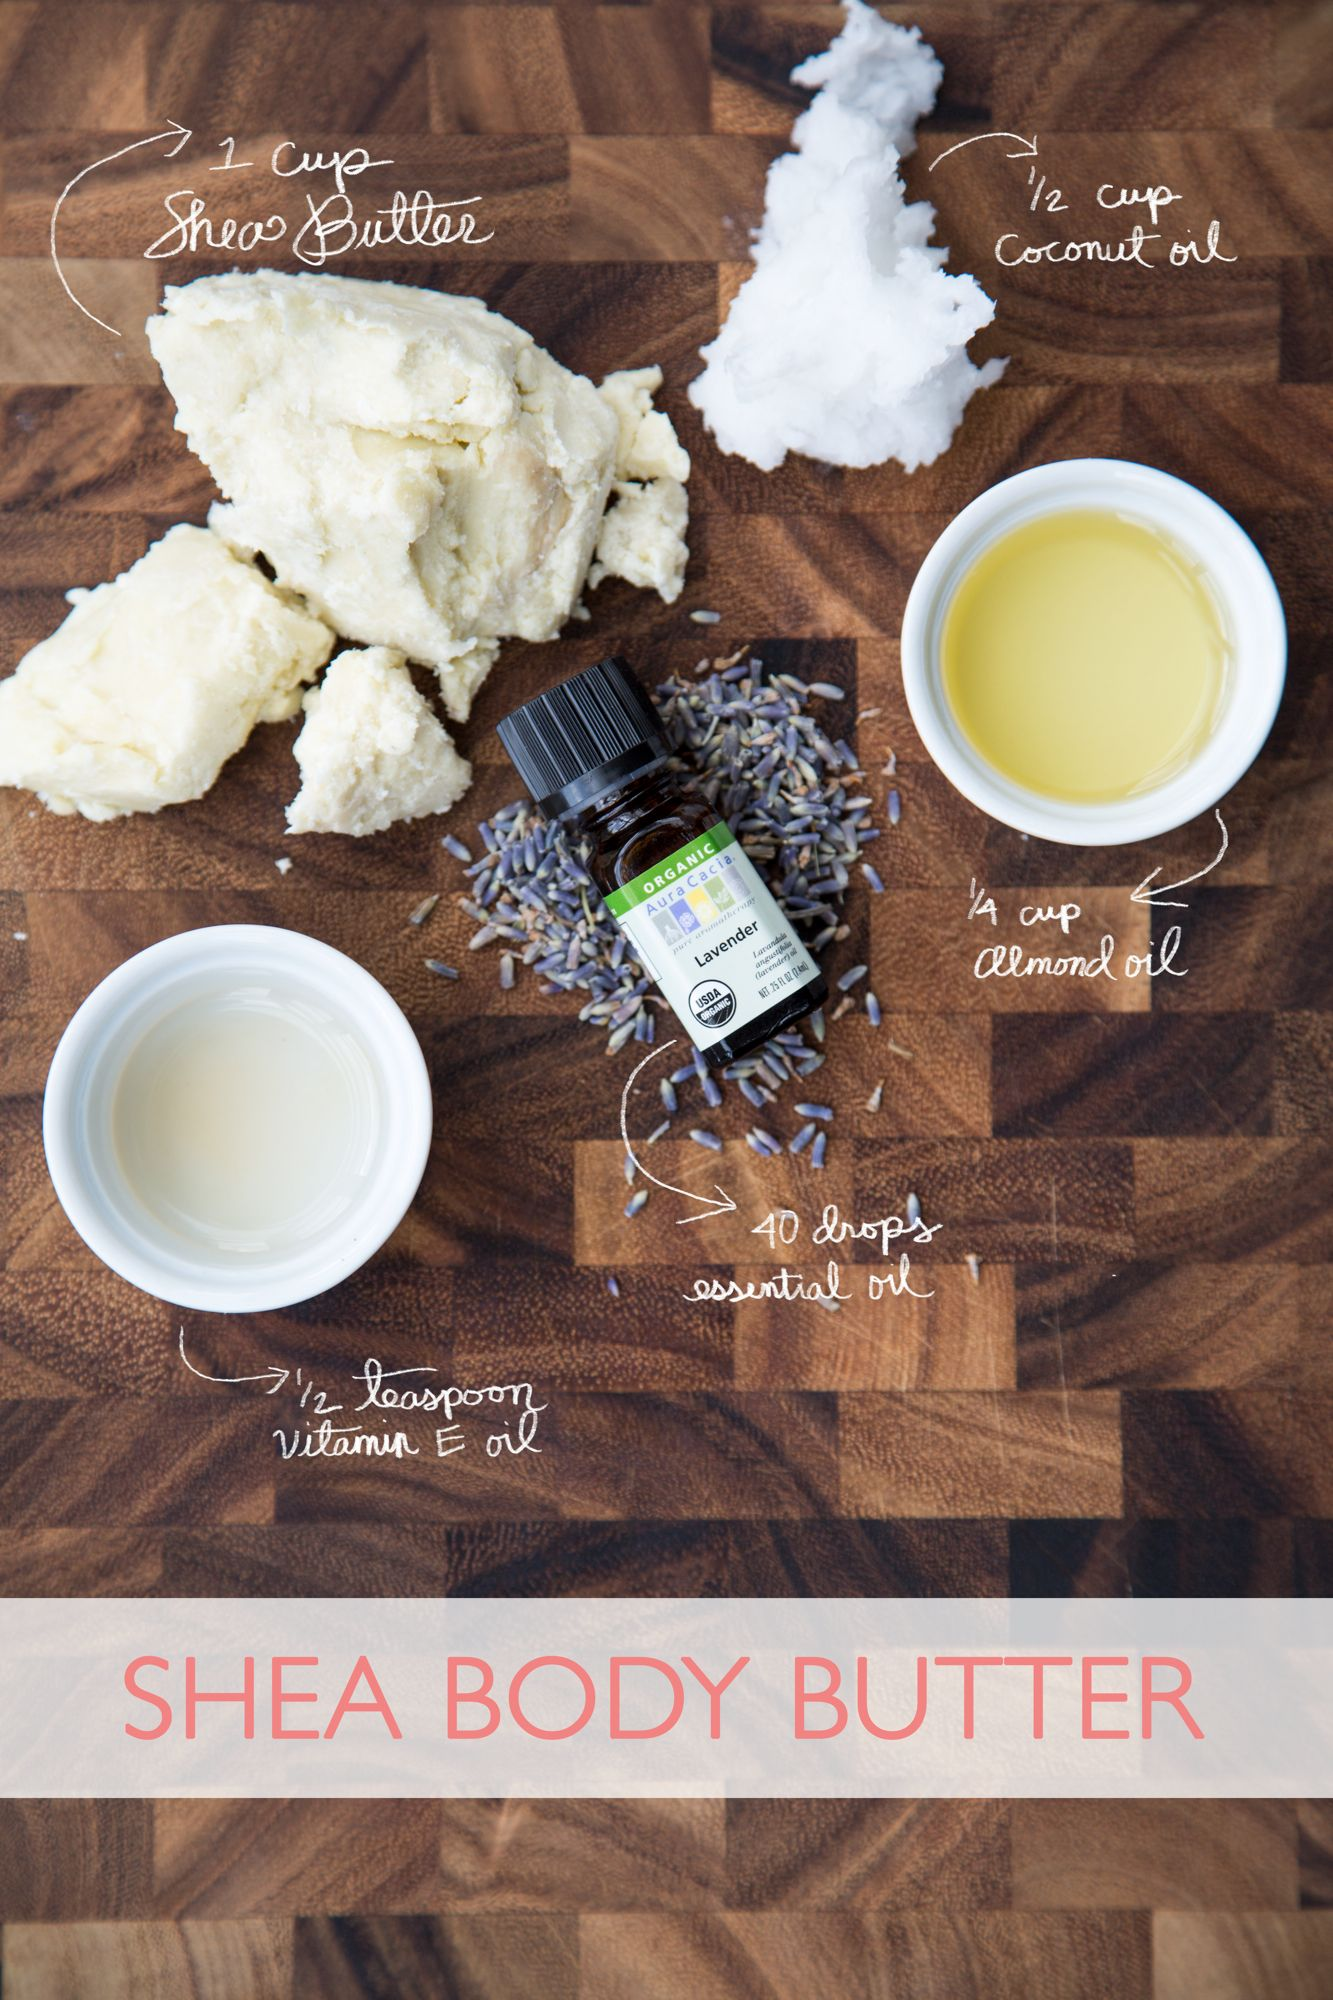 Diy Body Butter With Shea Butter Coconut Oil Vitamin E Oil And